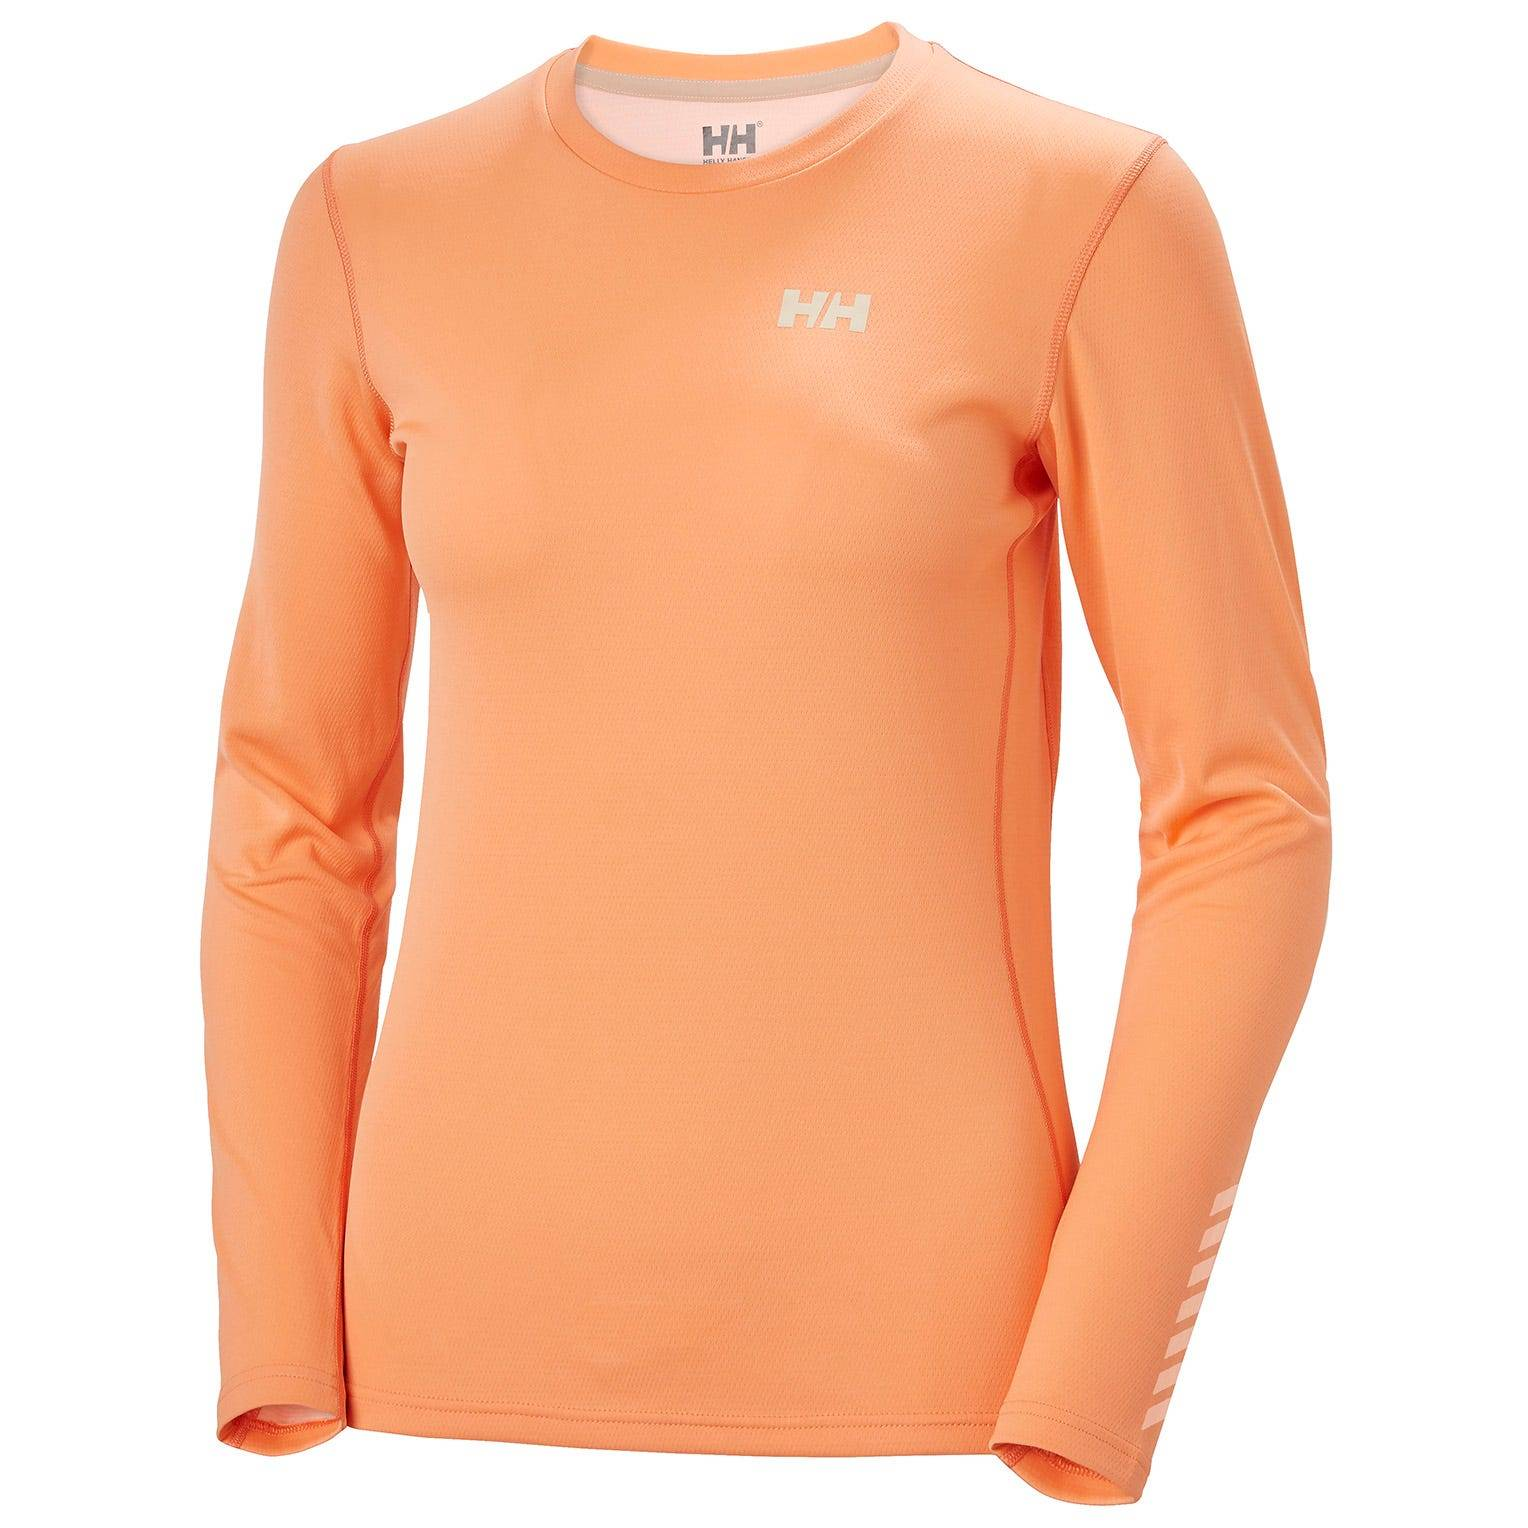 Helly Hansen Femme Sous-vêtement Technique Orange Xl